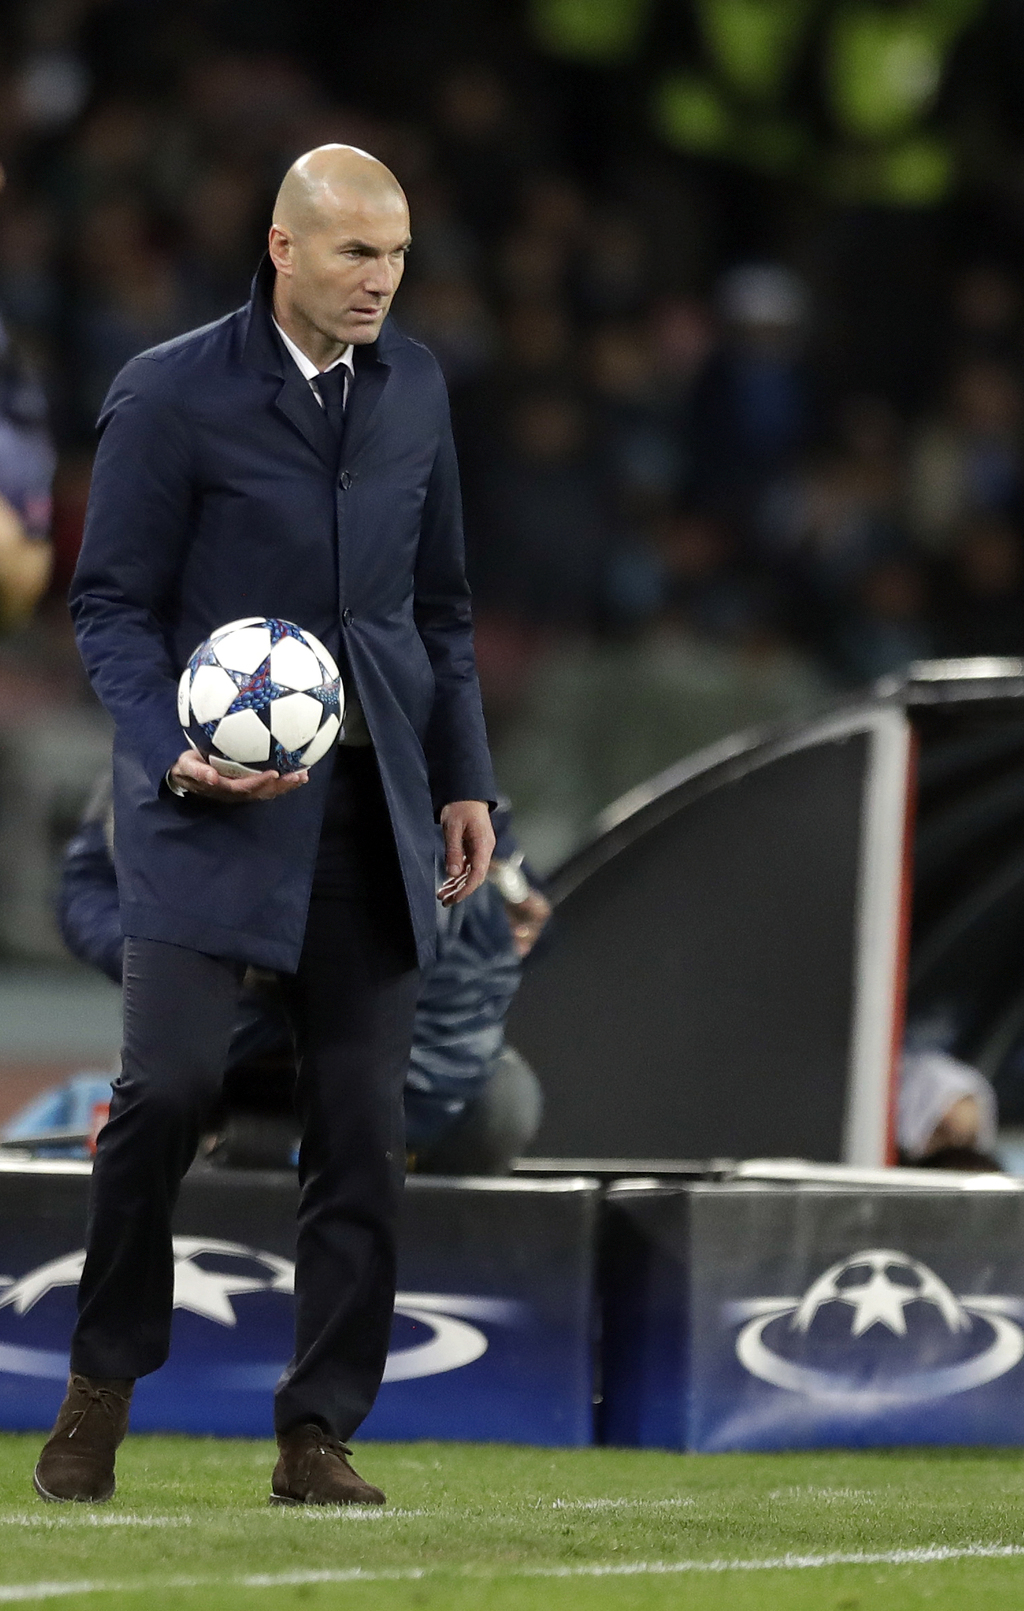 Real Madrid's head coach Zinedine Zidane holds a ball during the Champions League round of 16, second leg, soccer match between Napoli ...